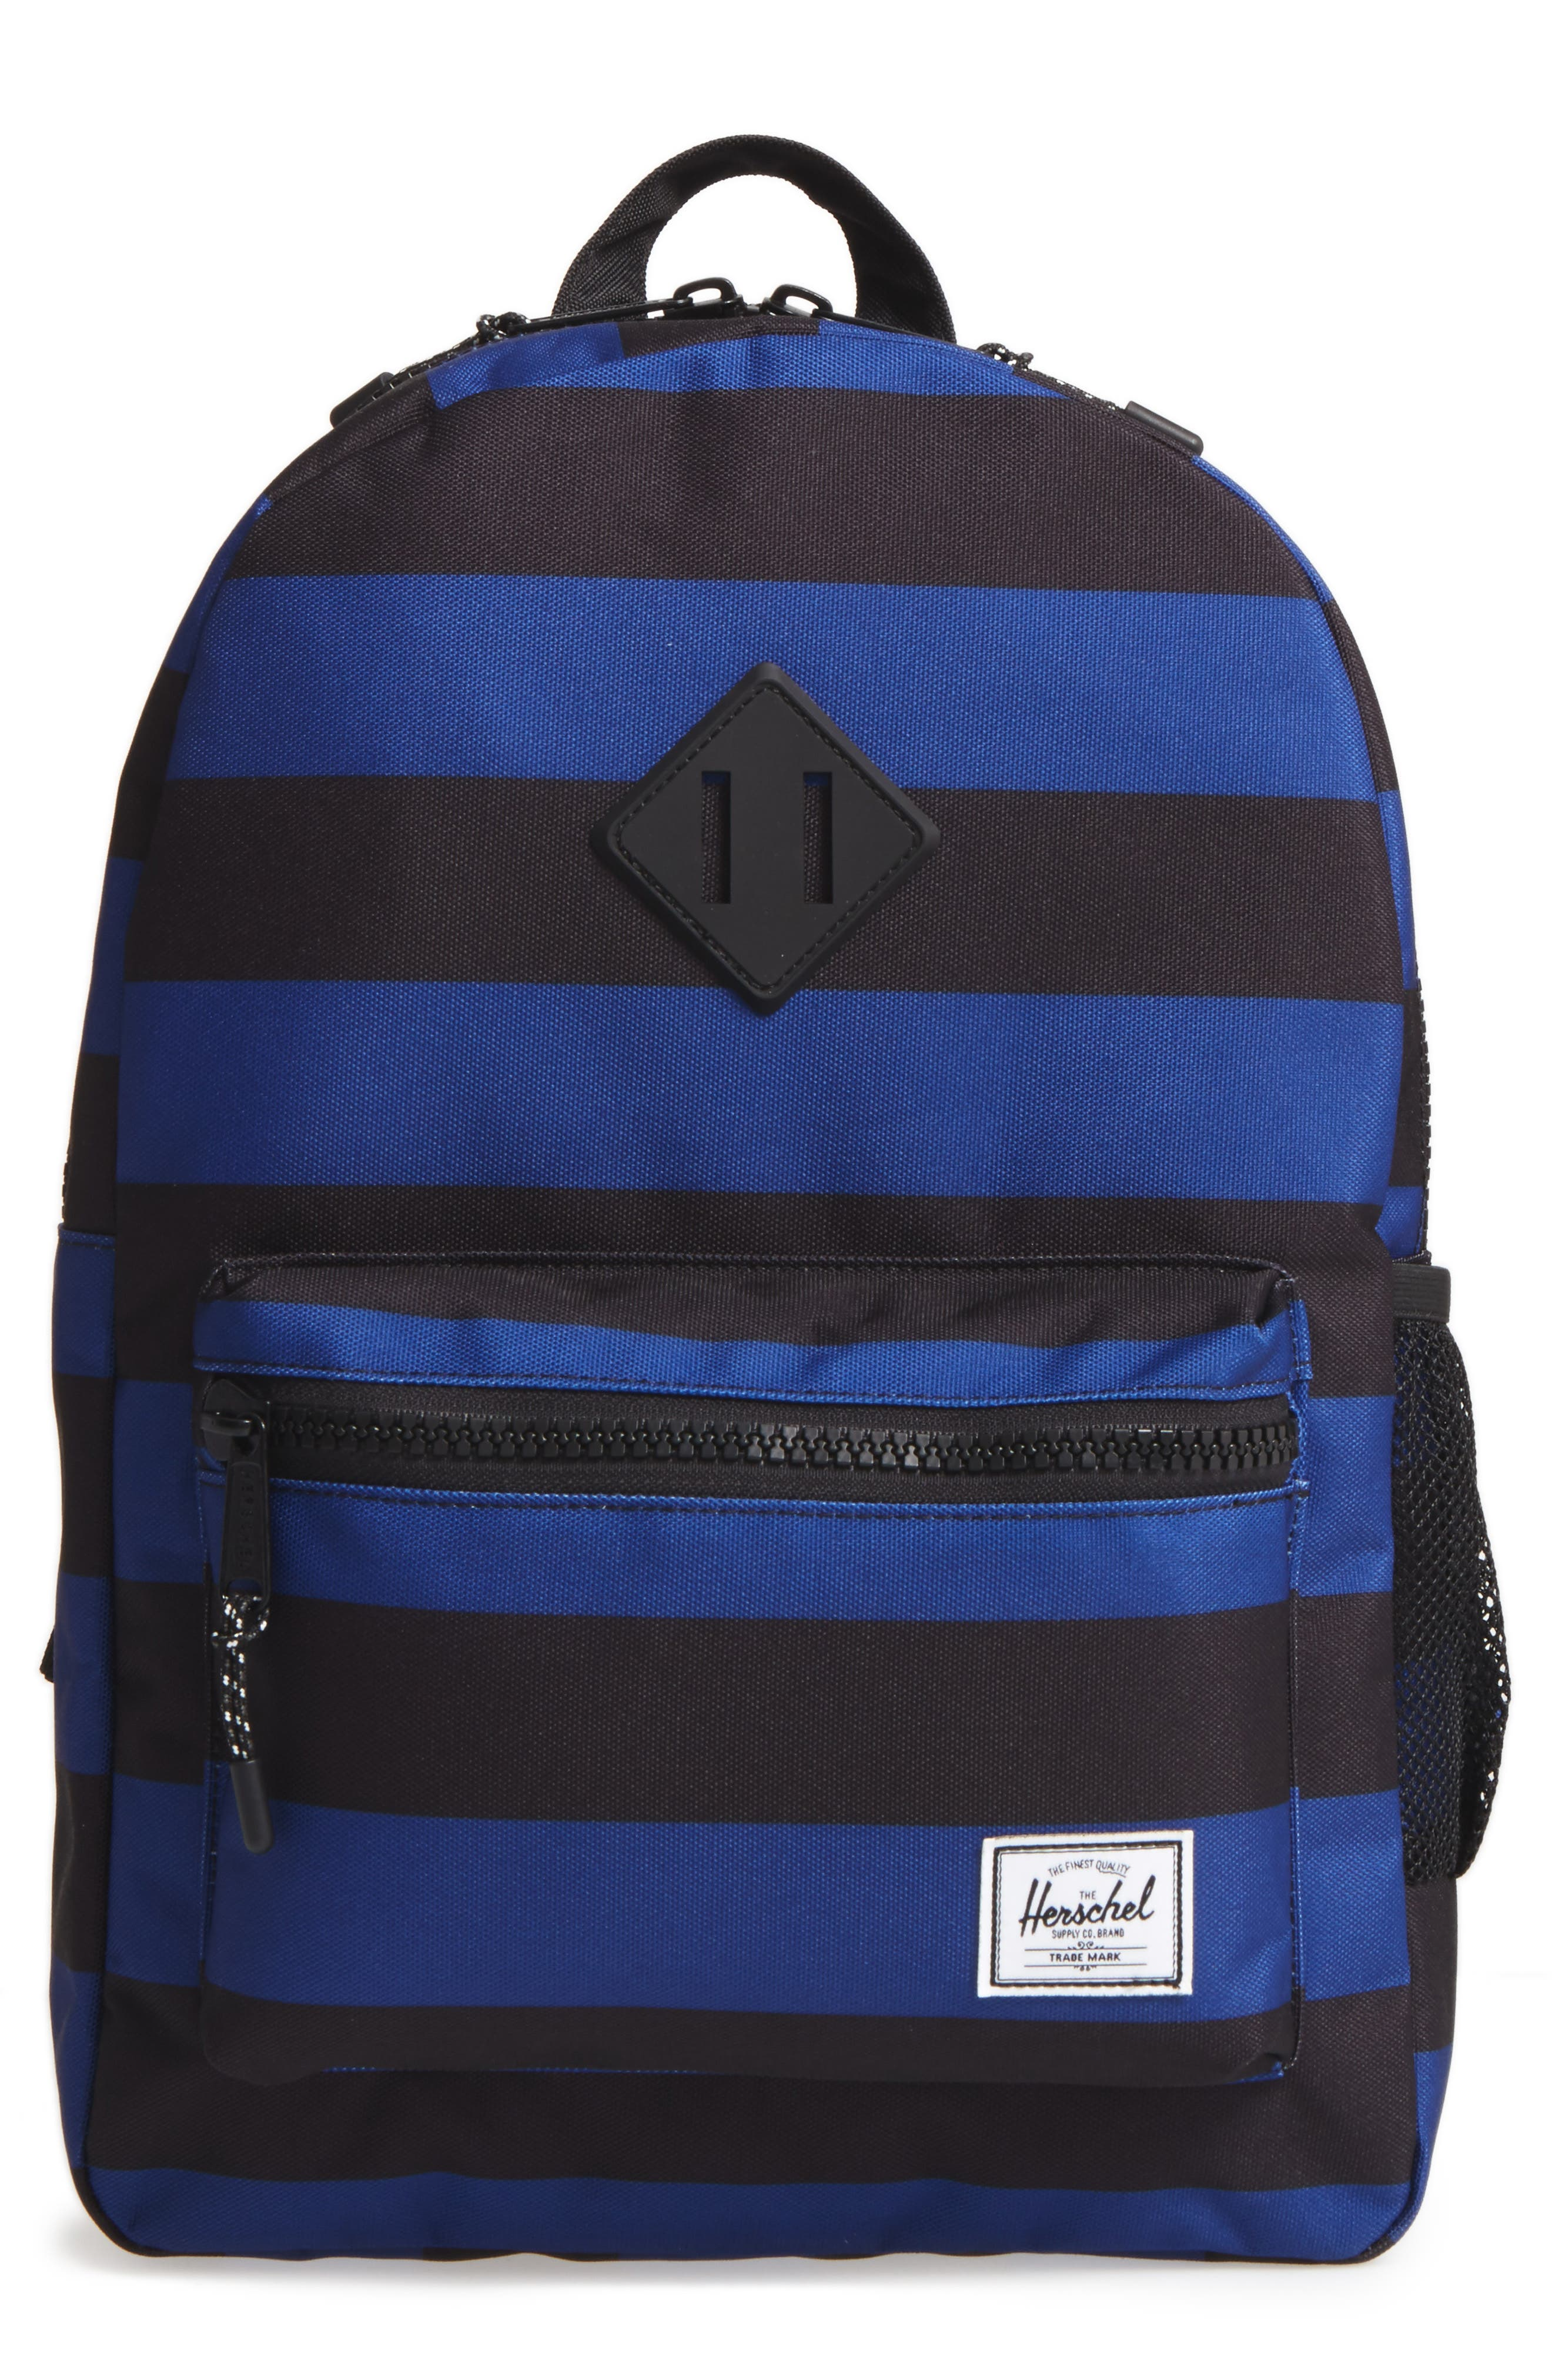 Heritage Youth Backpack,                         Main,                         color, 001